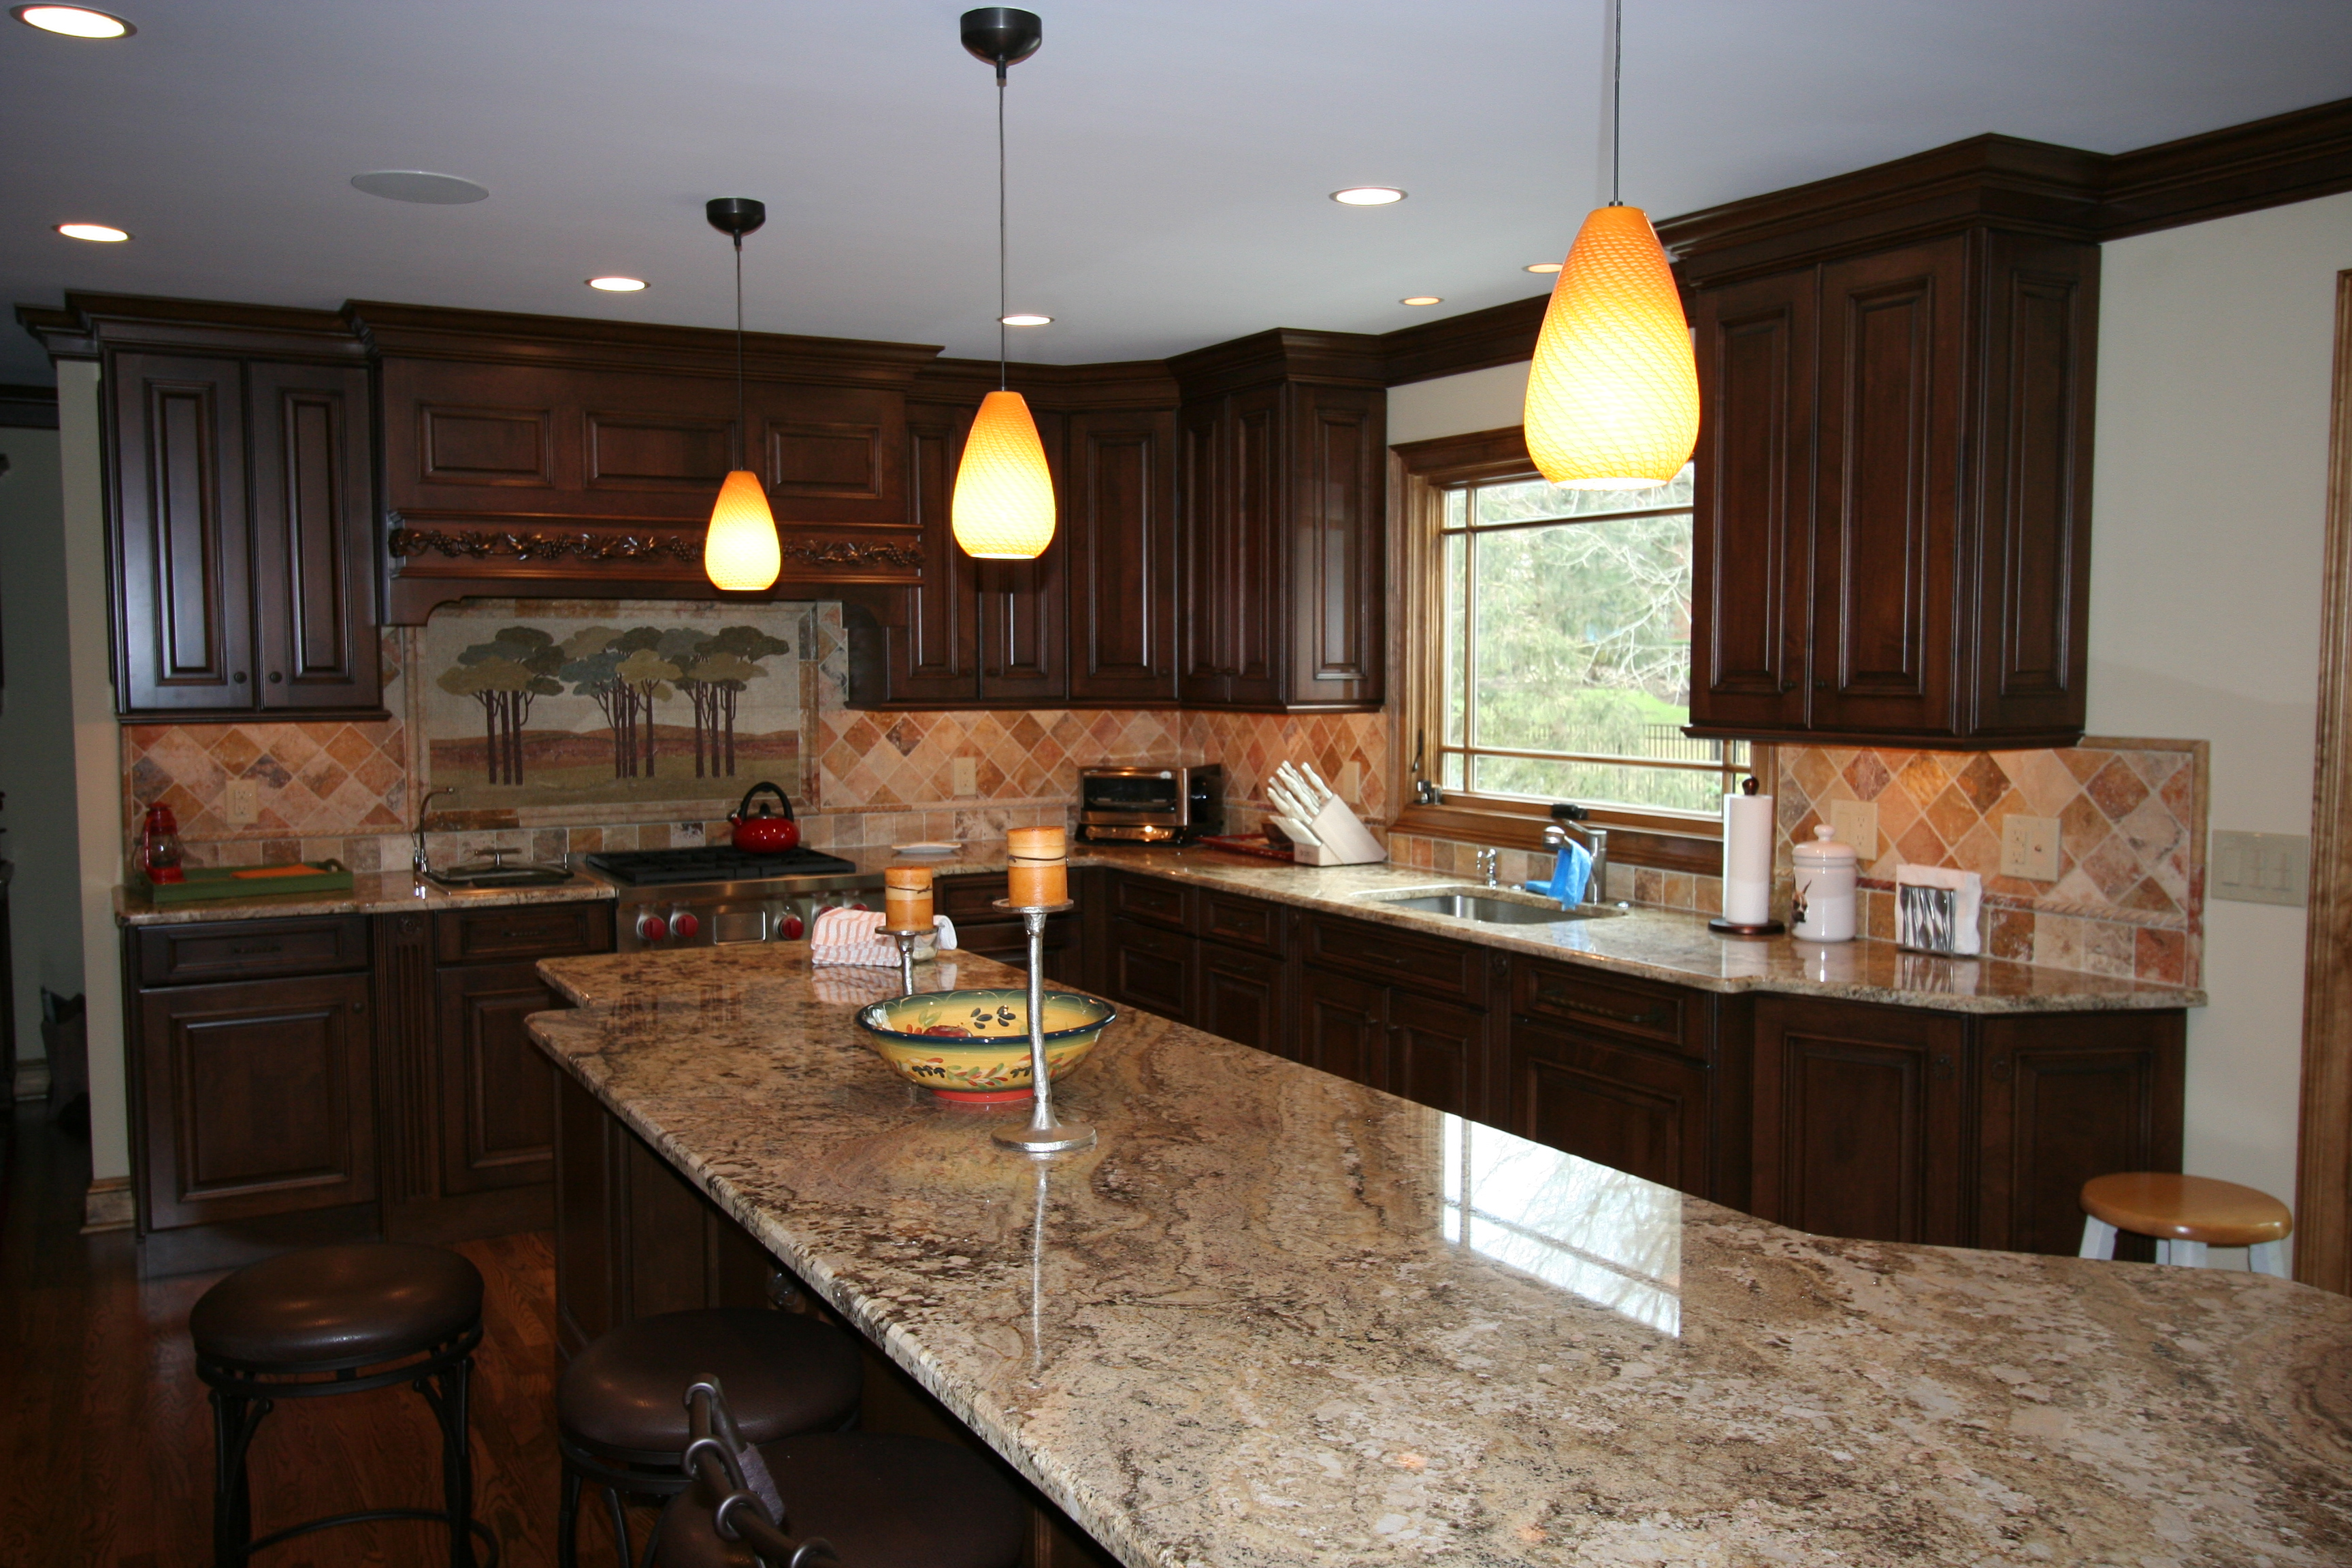 High Quality Custom Kitchen Completed In Dresher, Pa.